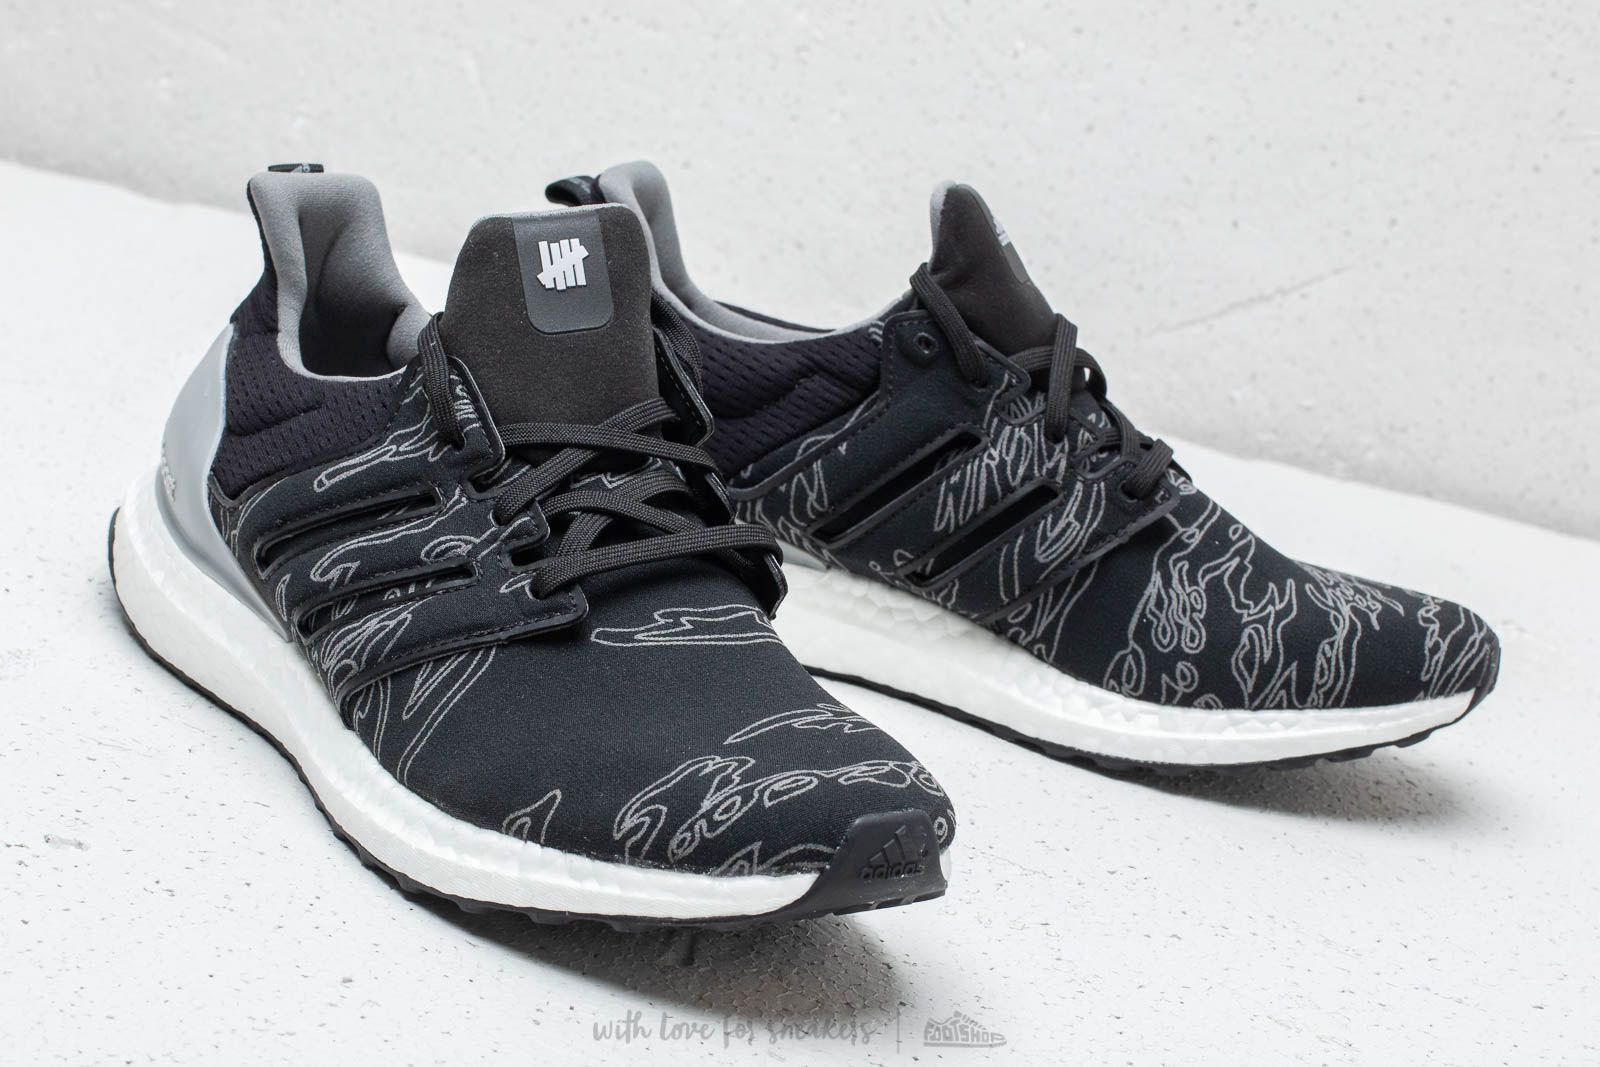 online store 85868 49b05 adidas x Undefeated UltraBOOST Core Black  Core Black  Core Black at a  great price